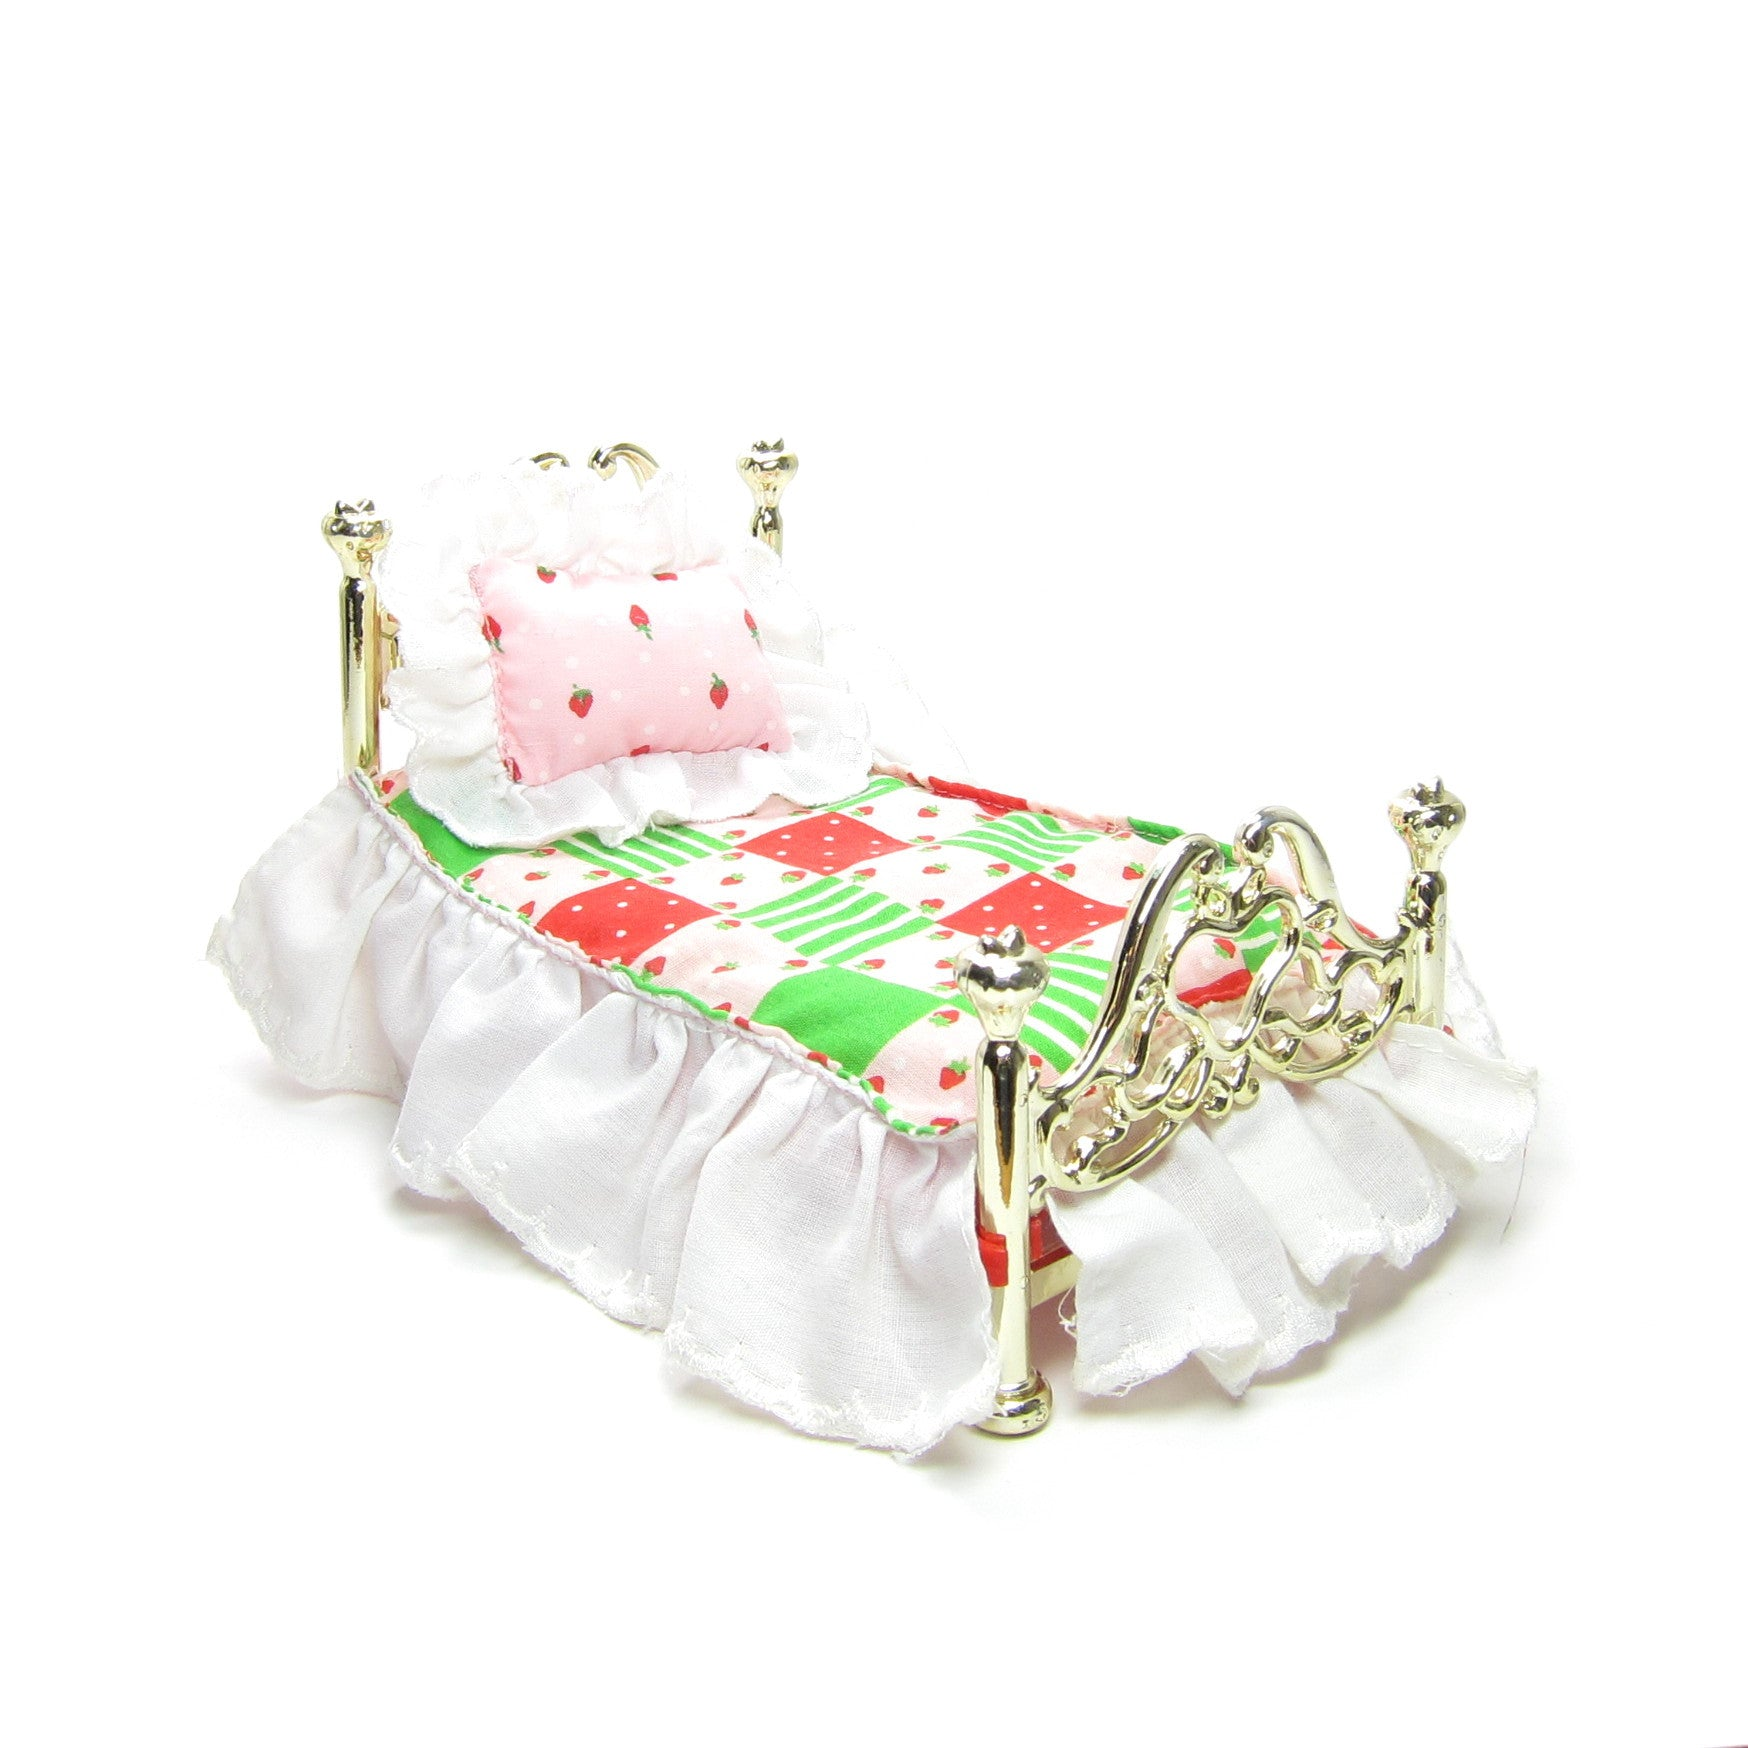 Bed for Strawberry Shortcake Berry Happy Home dollhouse